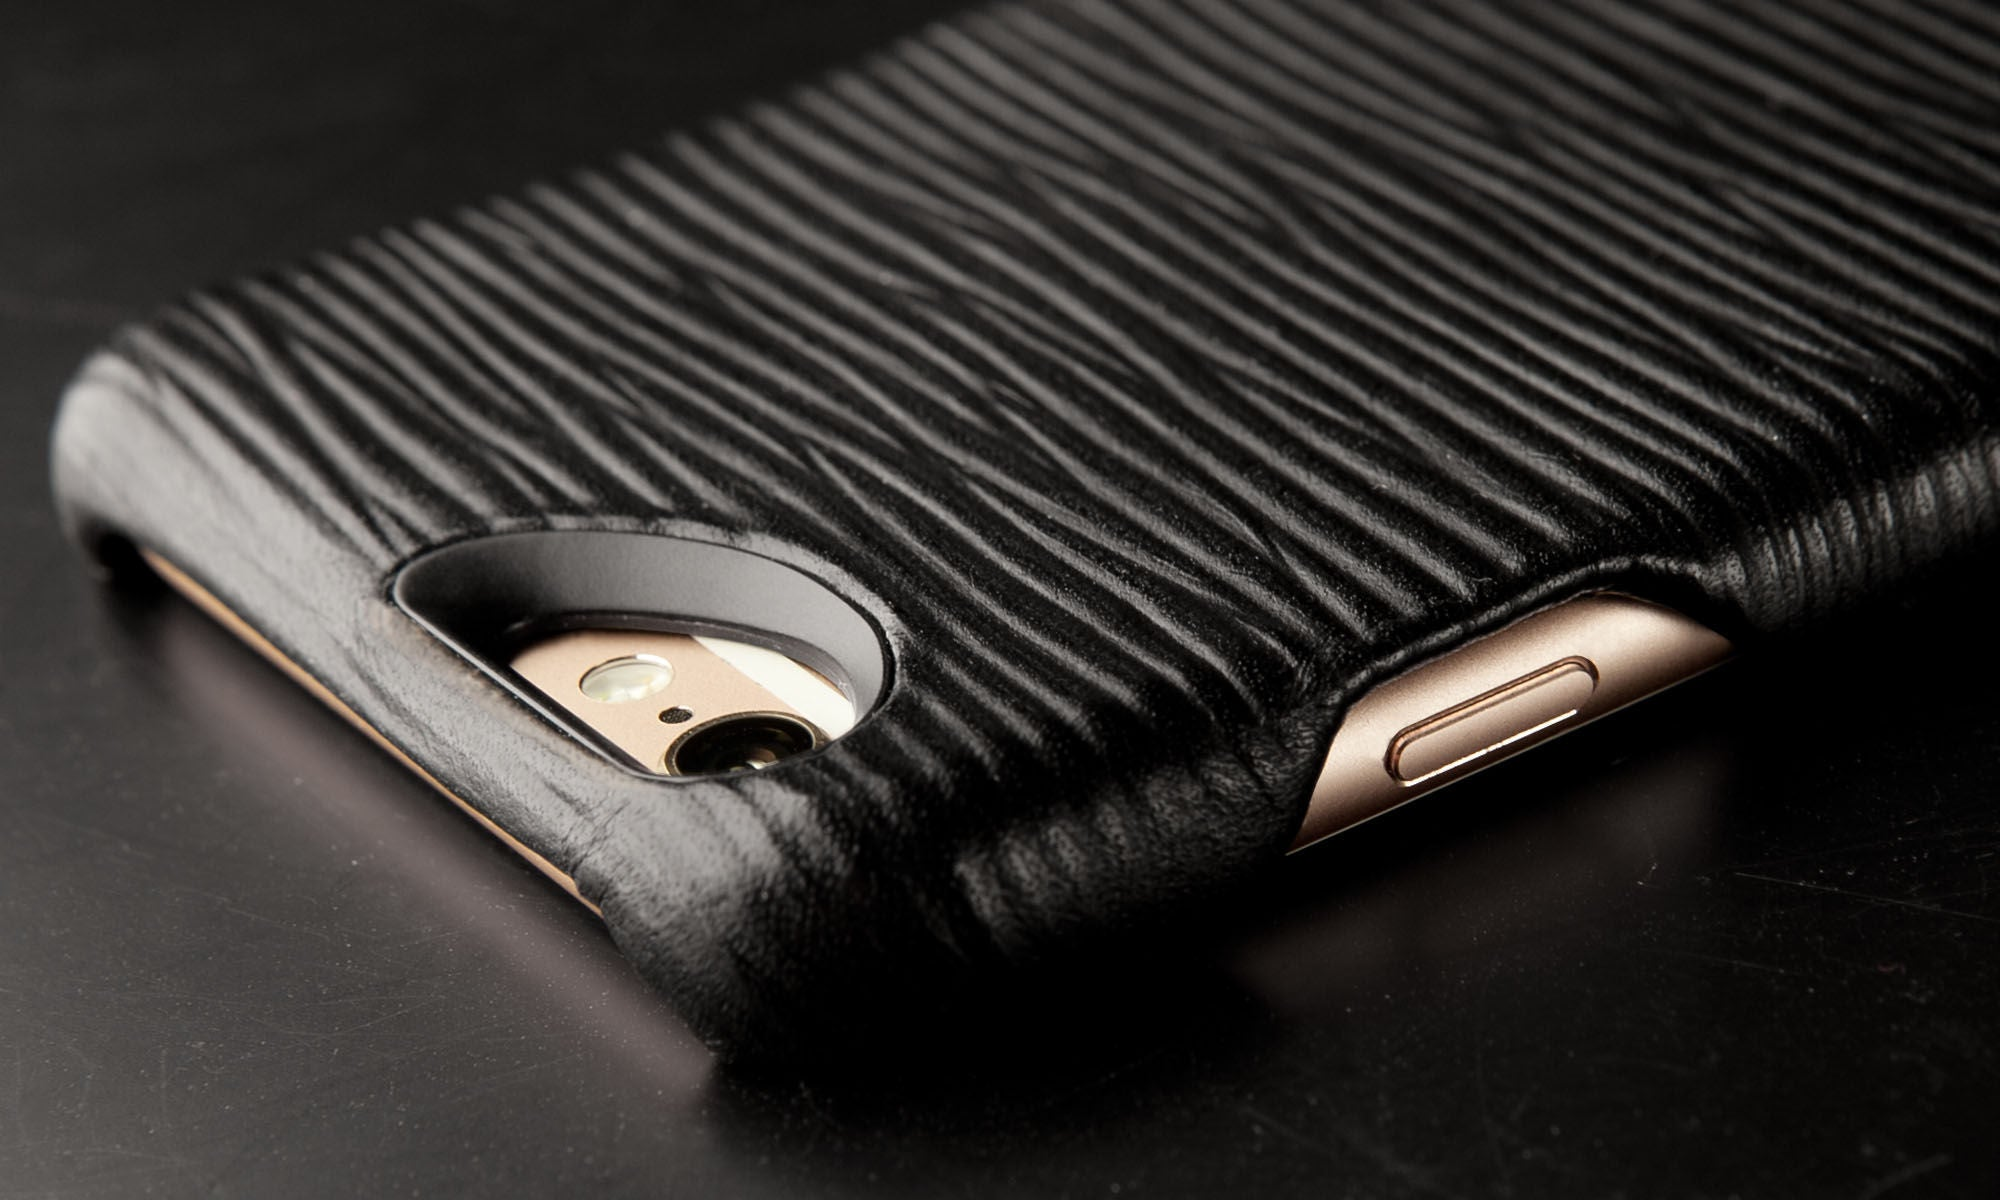 iPhone 6/6s Plus Grip Legno Nero Premium Leather Case